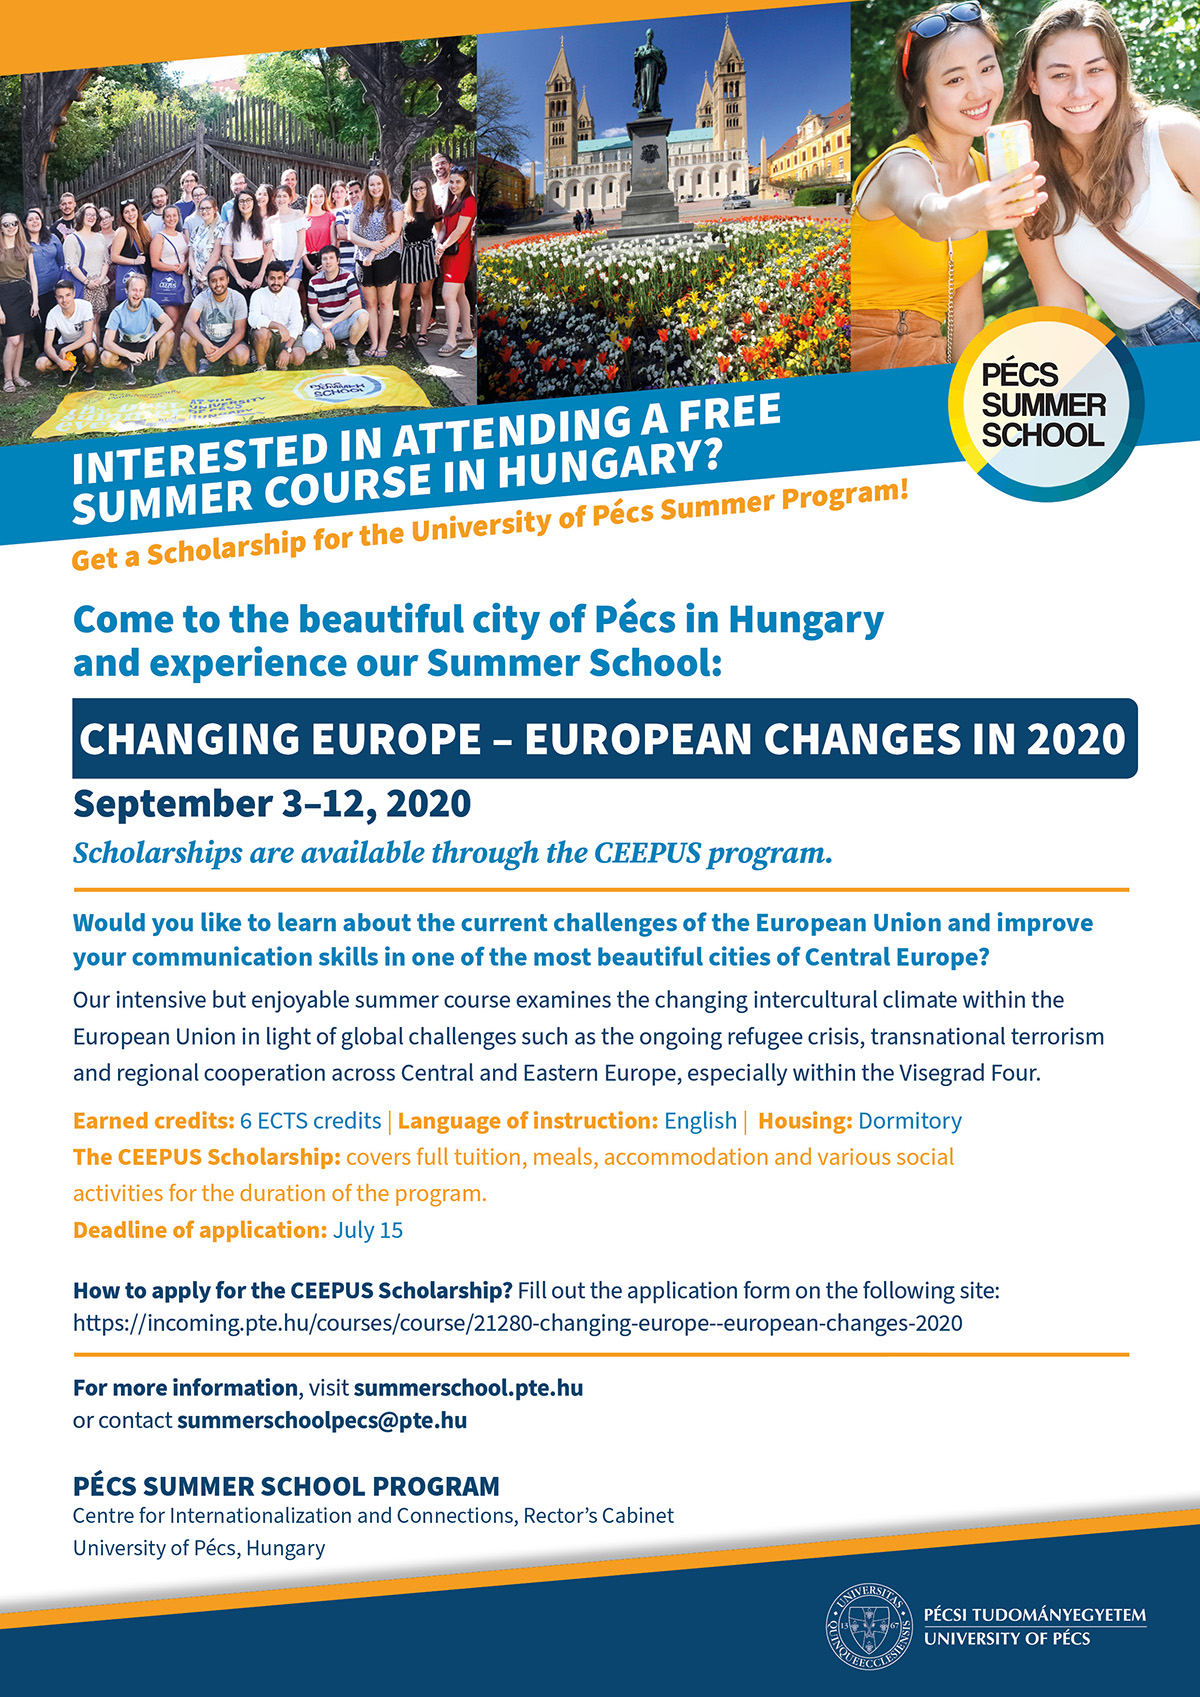 CEEPUS Summer School about the European Union 'Changing Europe – European Changes 2020'